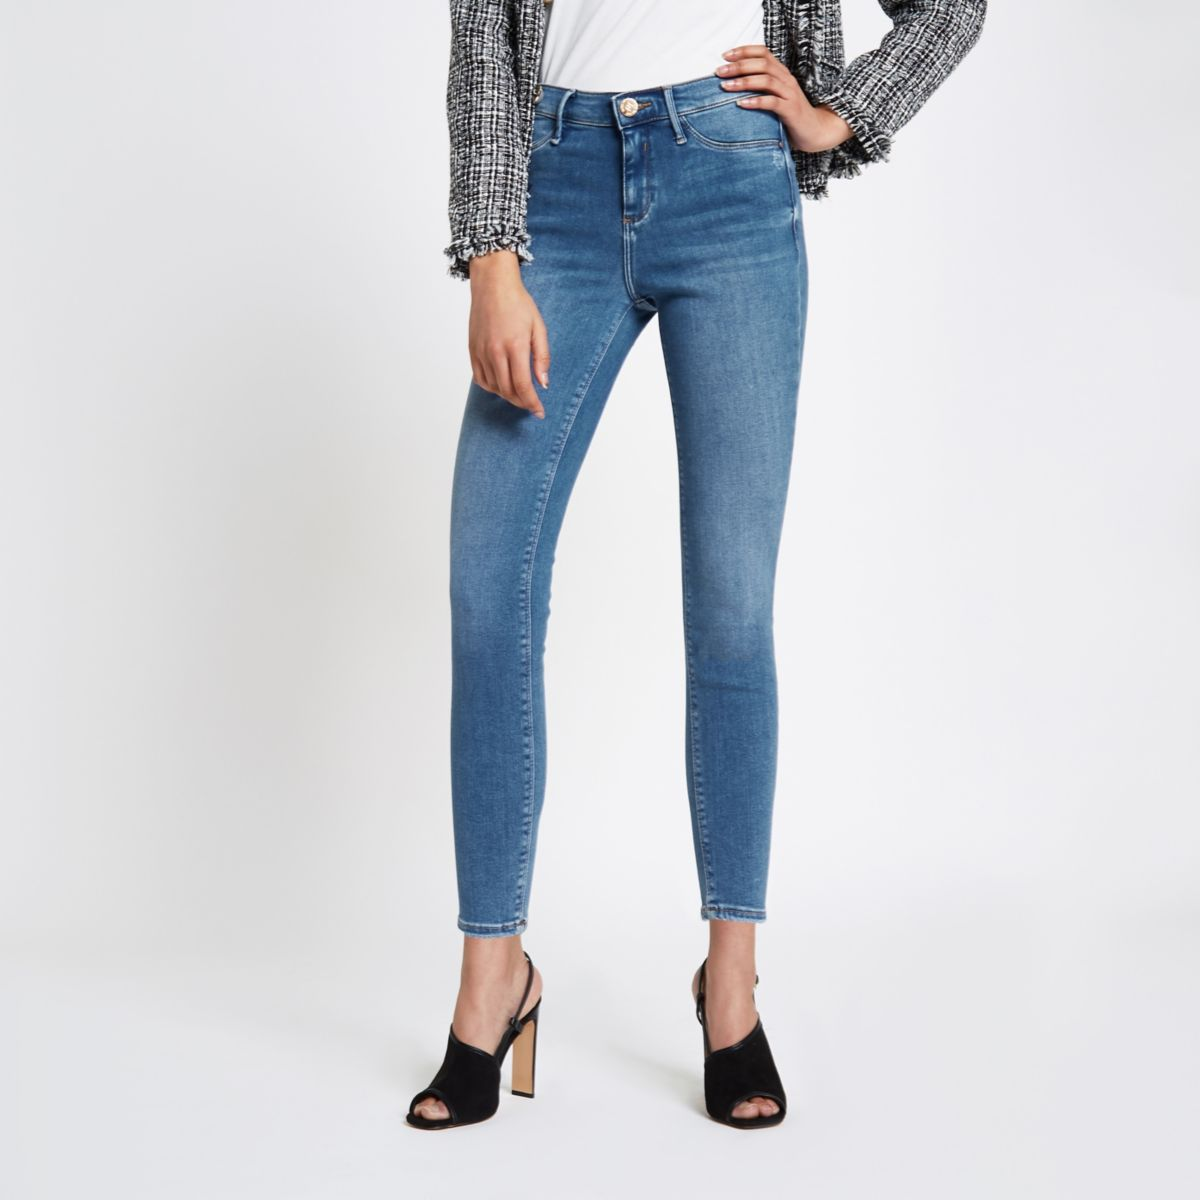 mid blue molly skinny fit jeggings jeans sale women